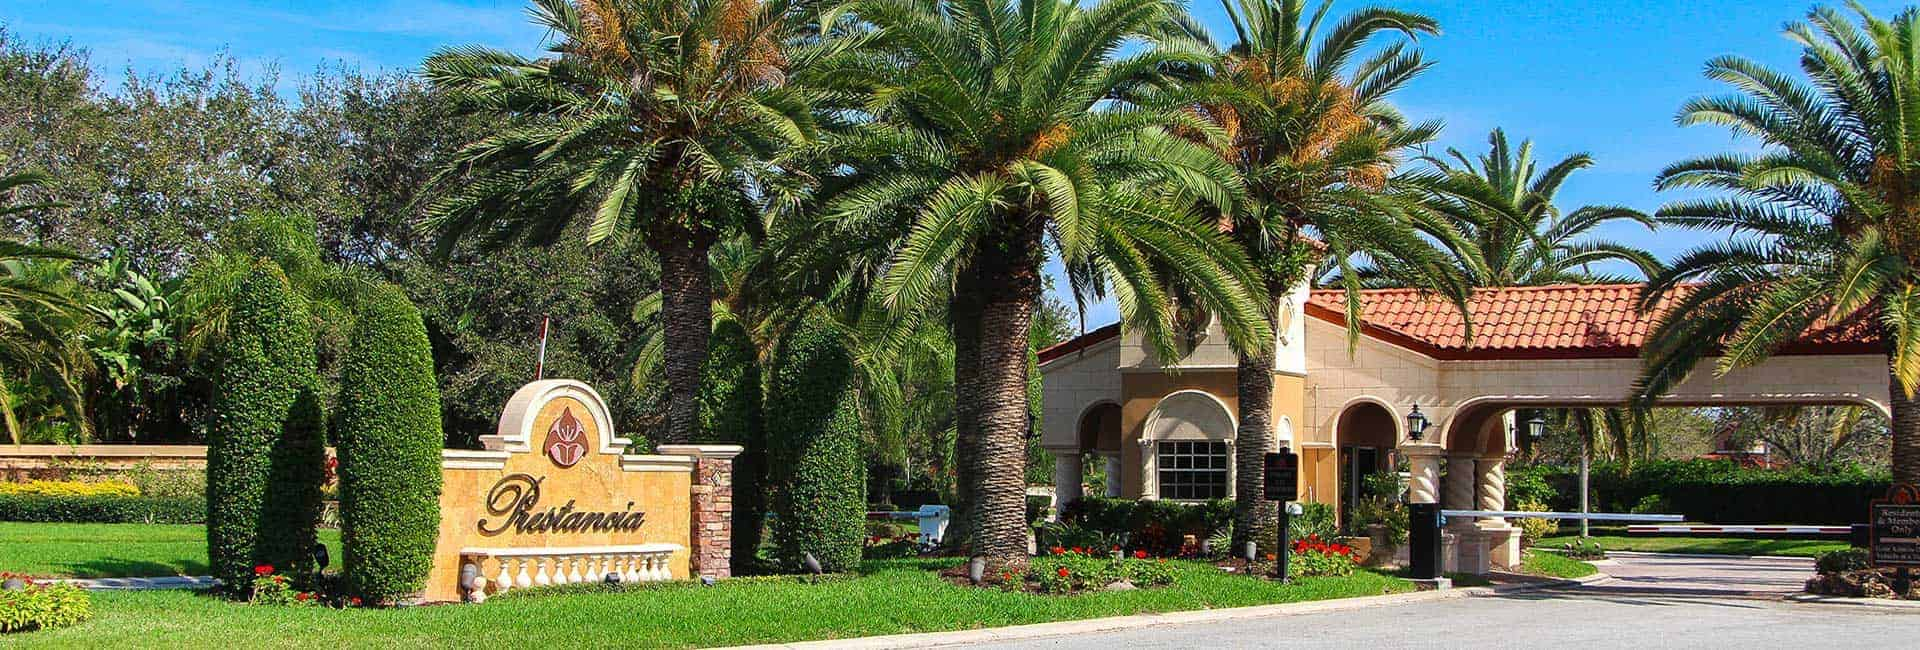 Palmer Ranch Homes For Sale in Sarasota, FL.